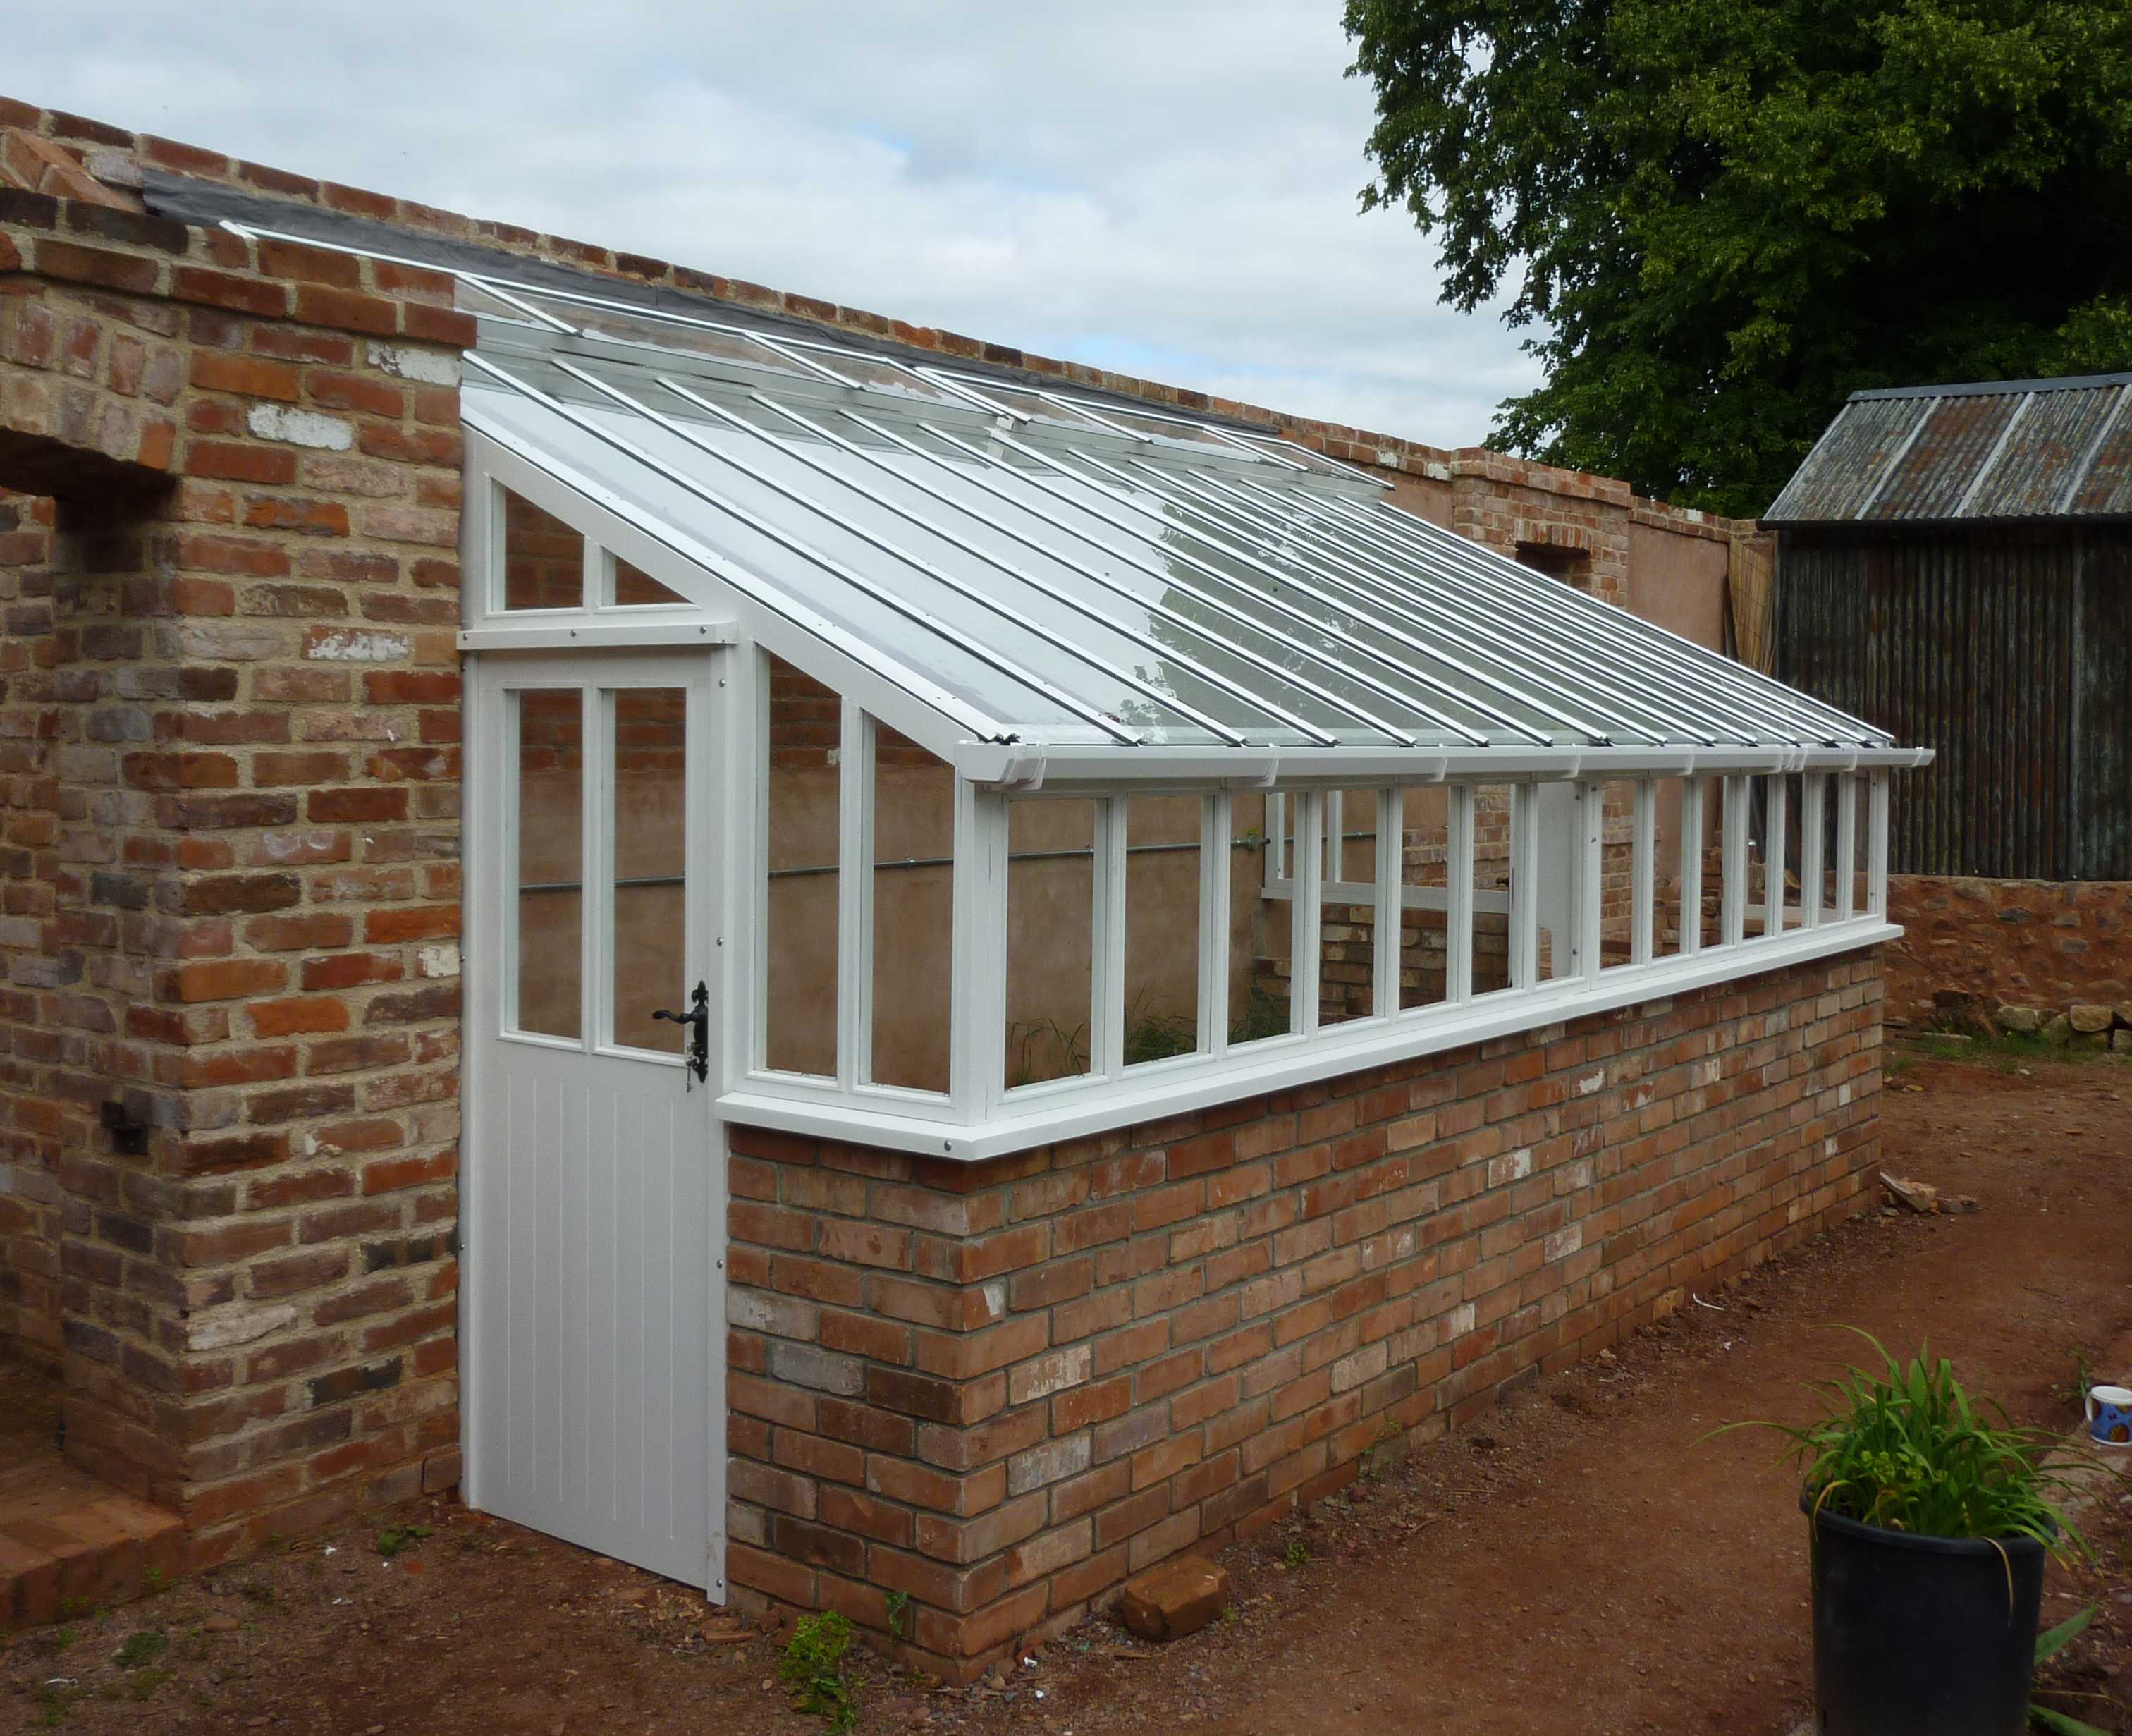 10ft x 16ft Lean To Cedar Greenhouse, Painted White Finish ...